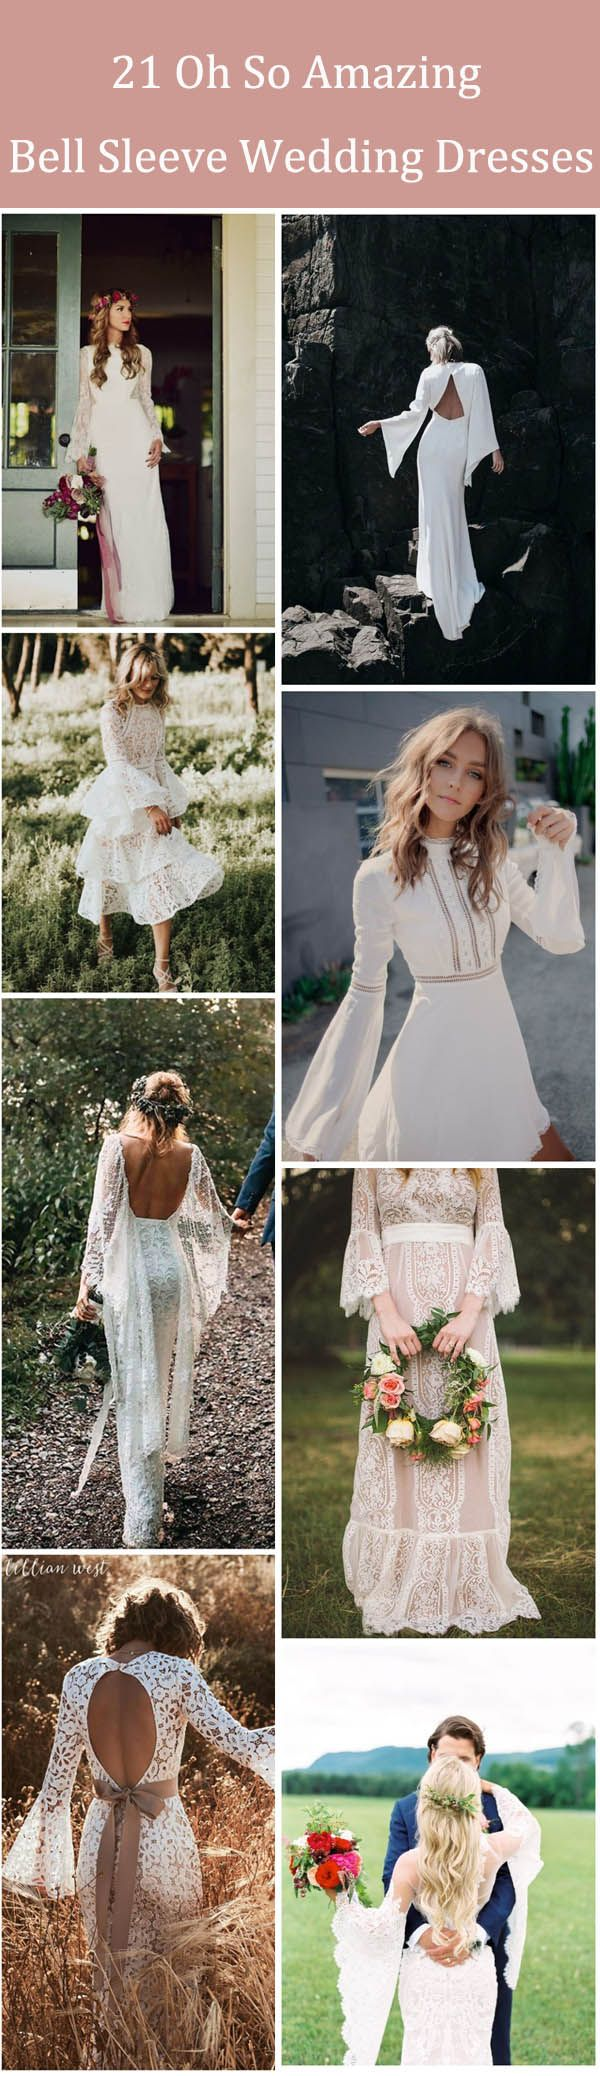 oh so amazing bell sleeve wedding dresses what i want in my